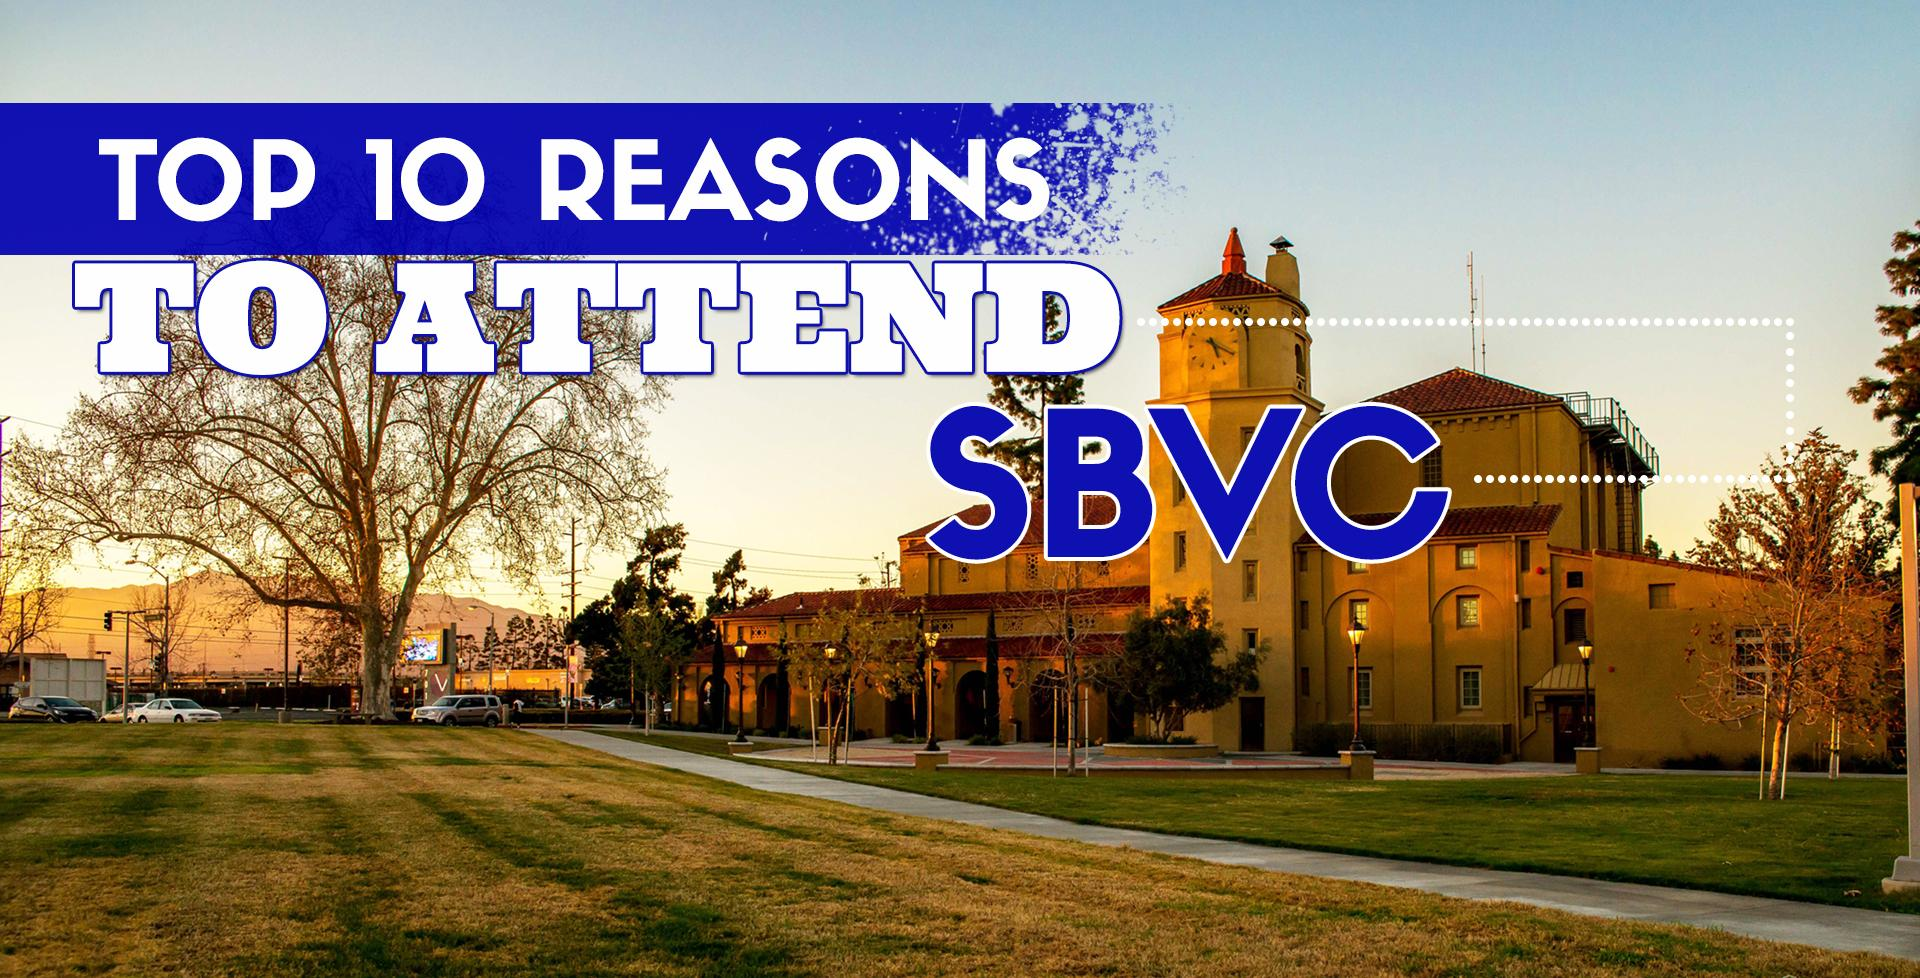 Top 10 Reasons to Attend SBVC!